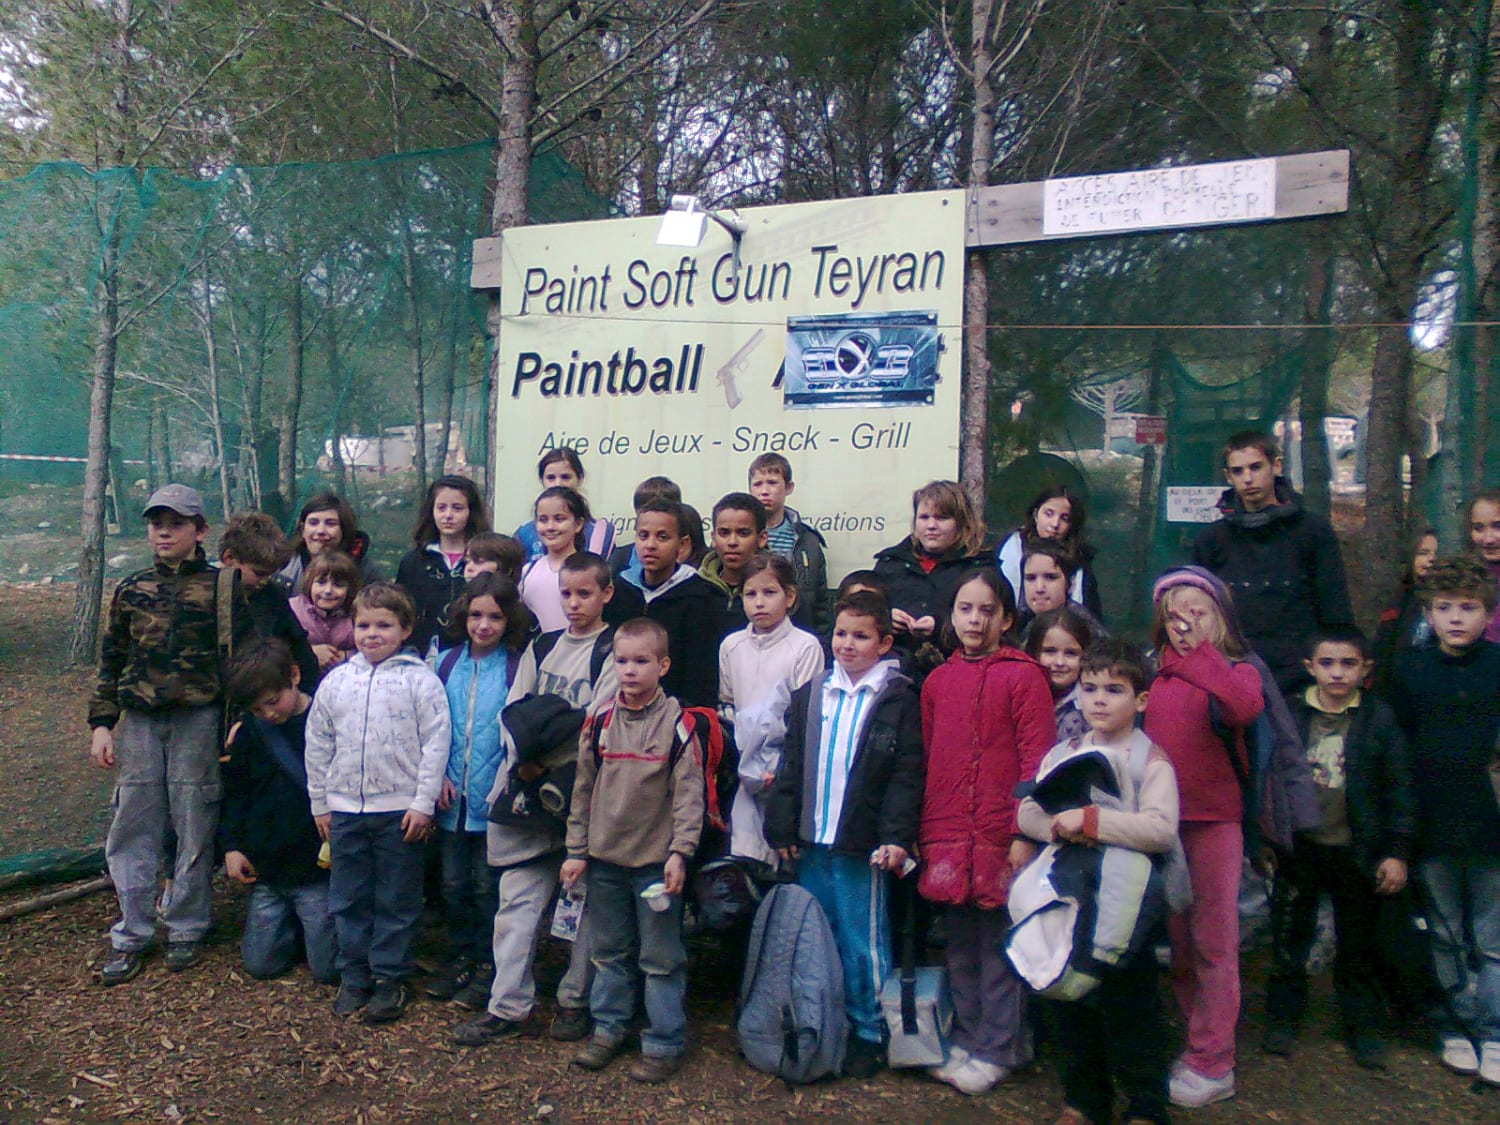 Paintball Montpellier Teyran, PSGT - Teyran